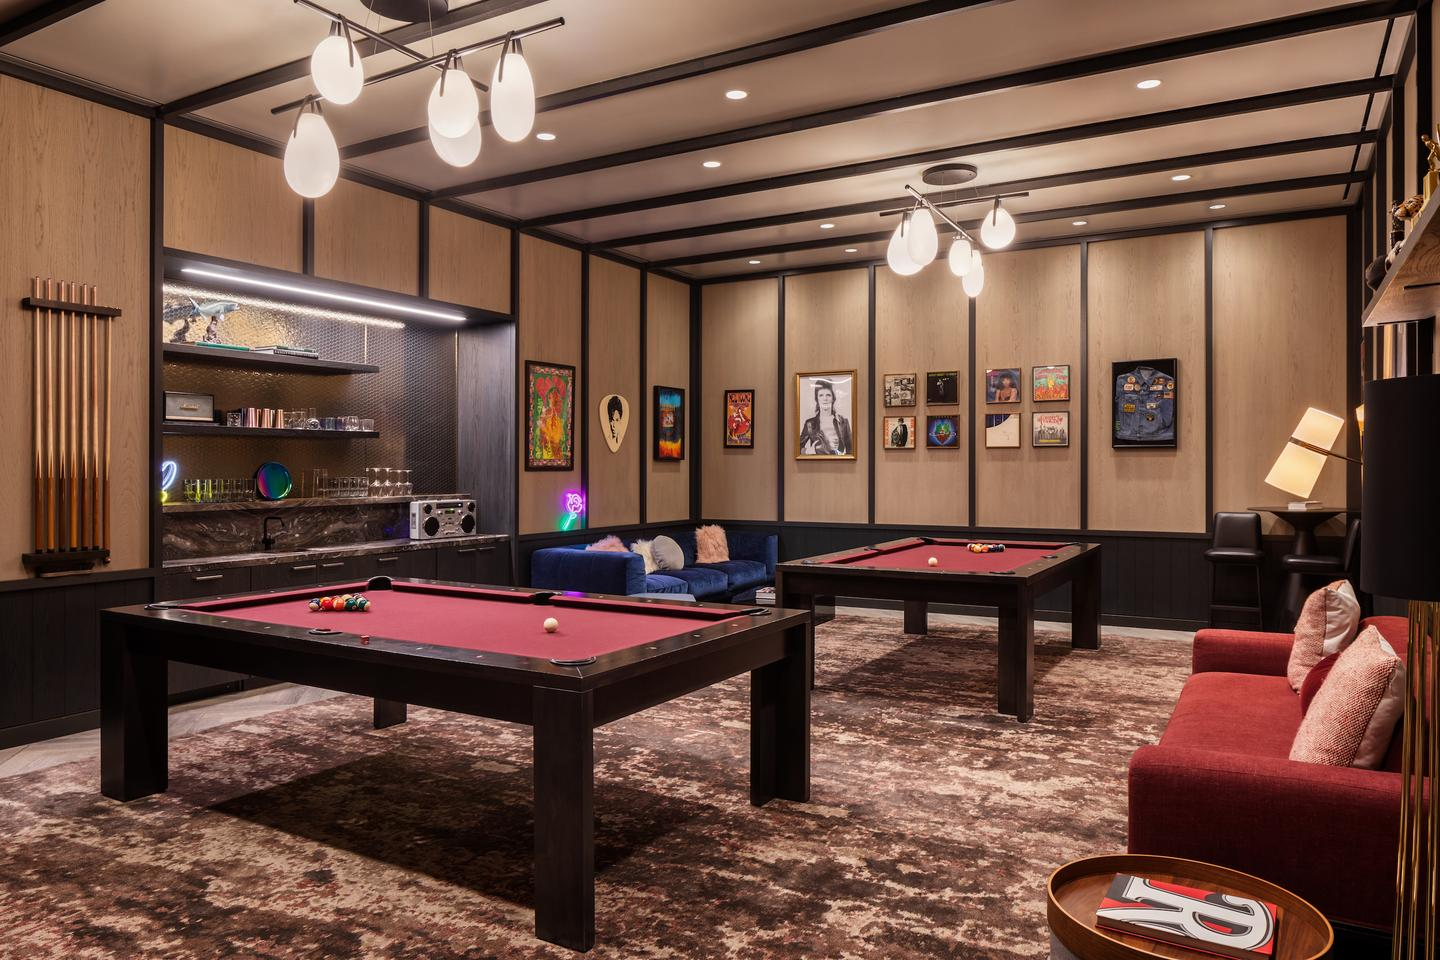 One Manhattan Square's extensive amenities include a billiards room